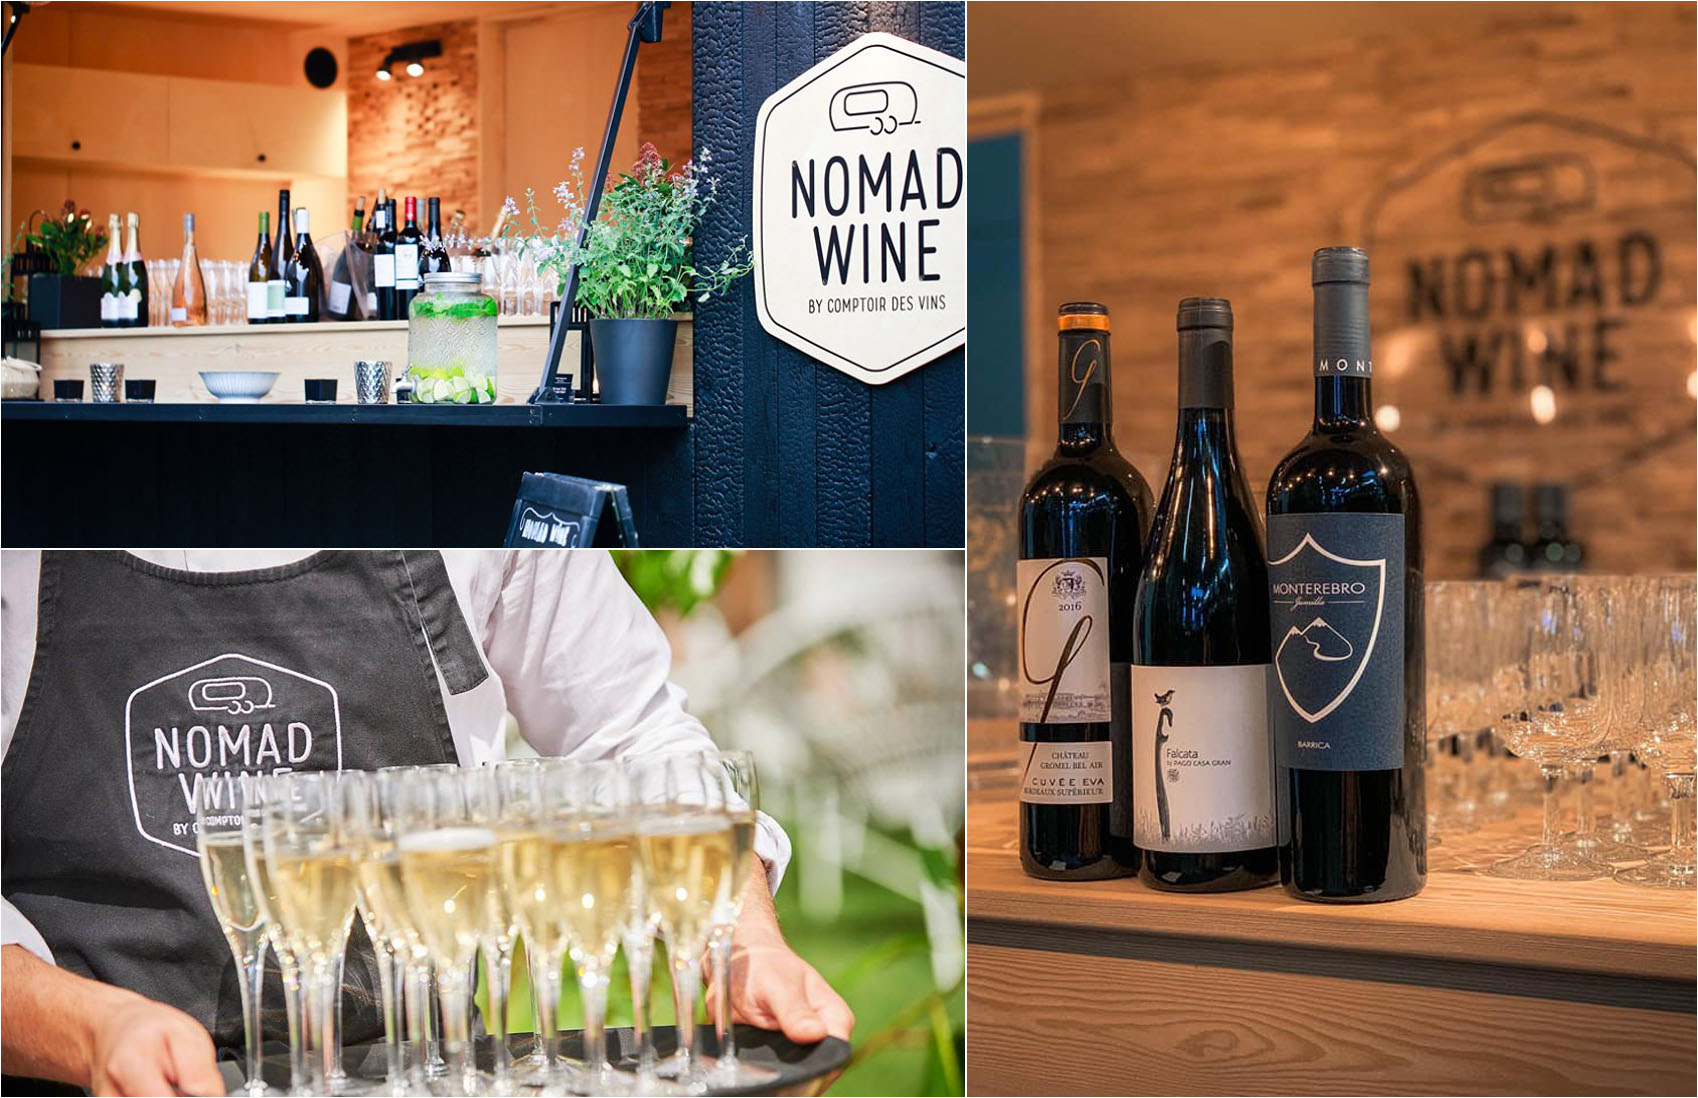 kwakoo-event-publication-news-nomad-wine